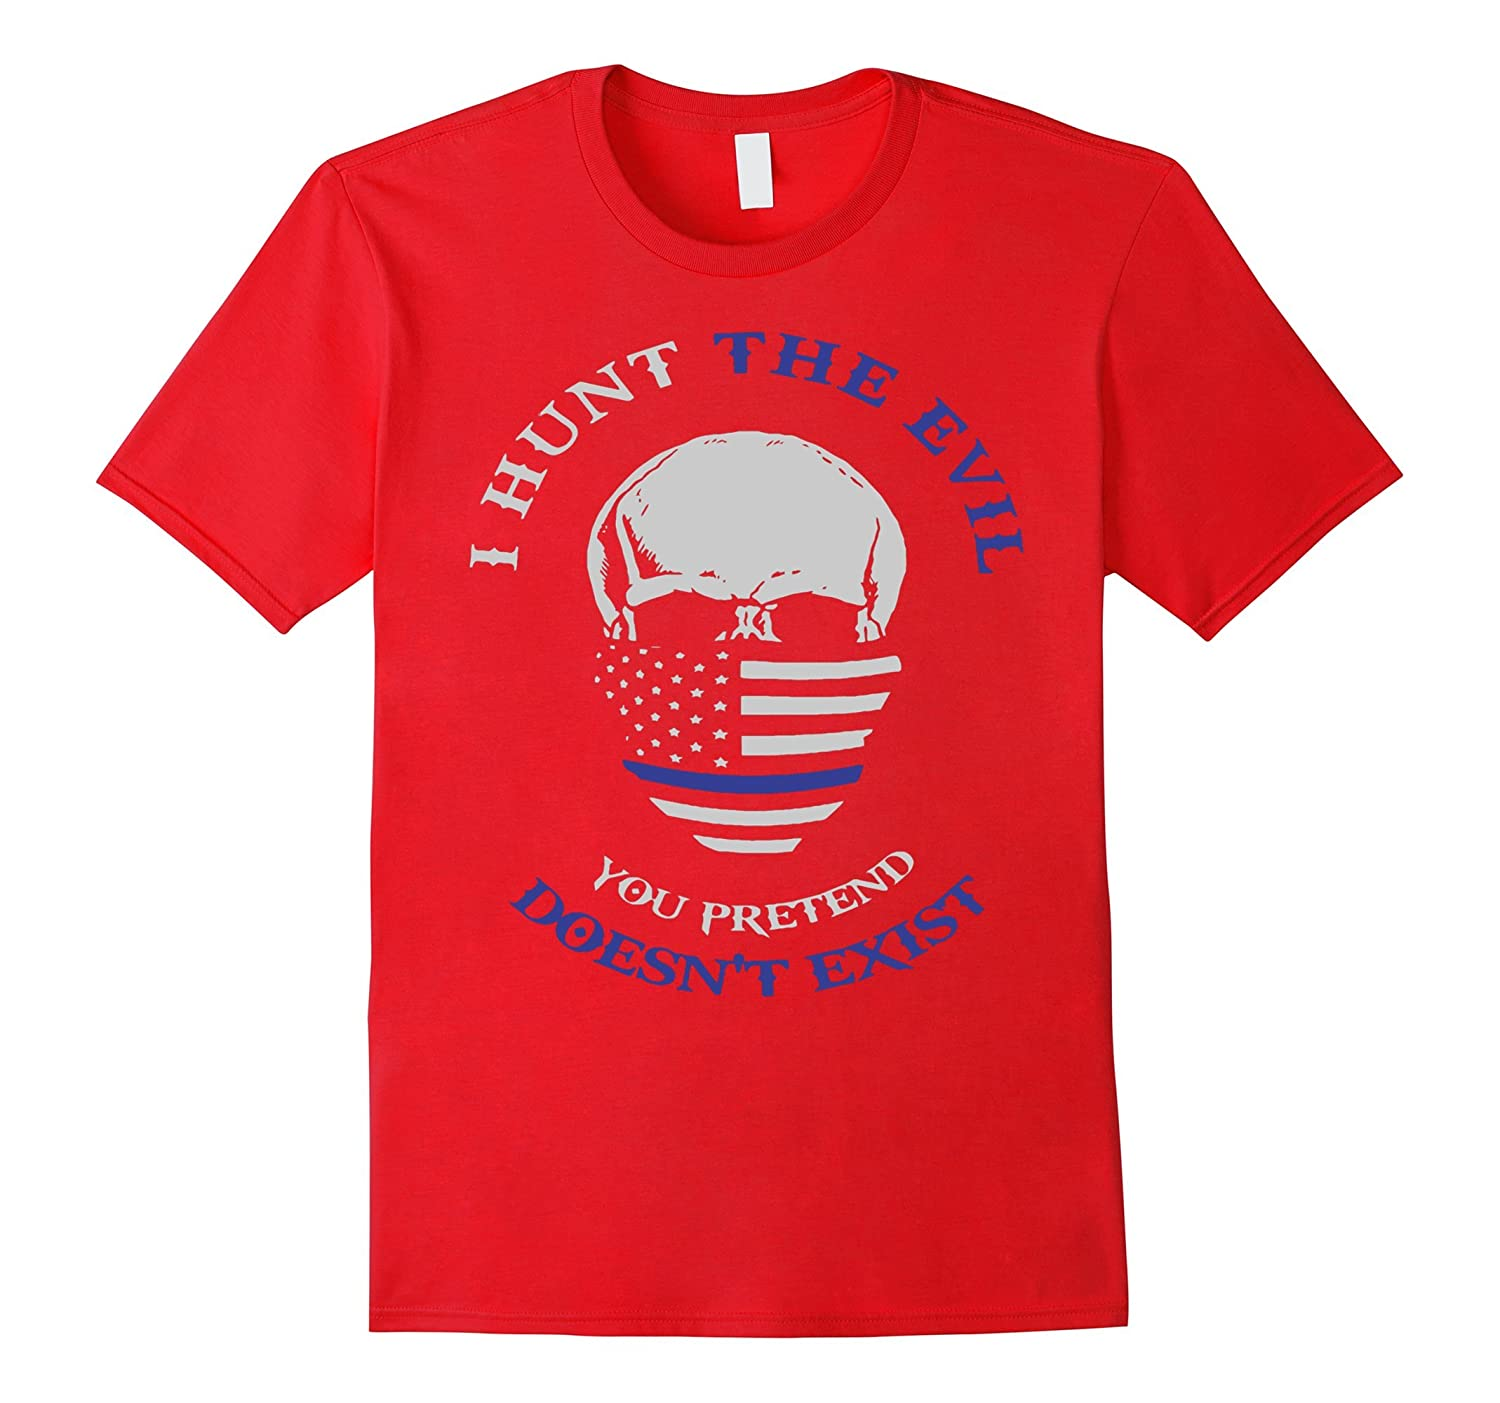 Thin Blue Line American Flag Police shirt I HUNT THE EVIL-TD